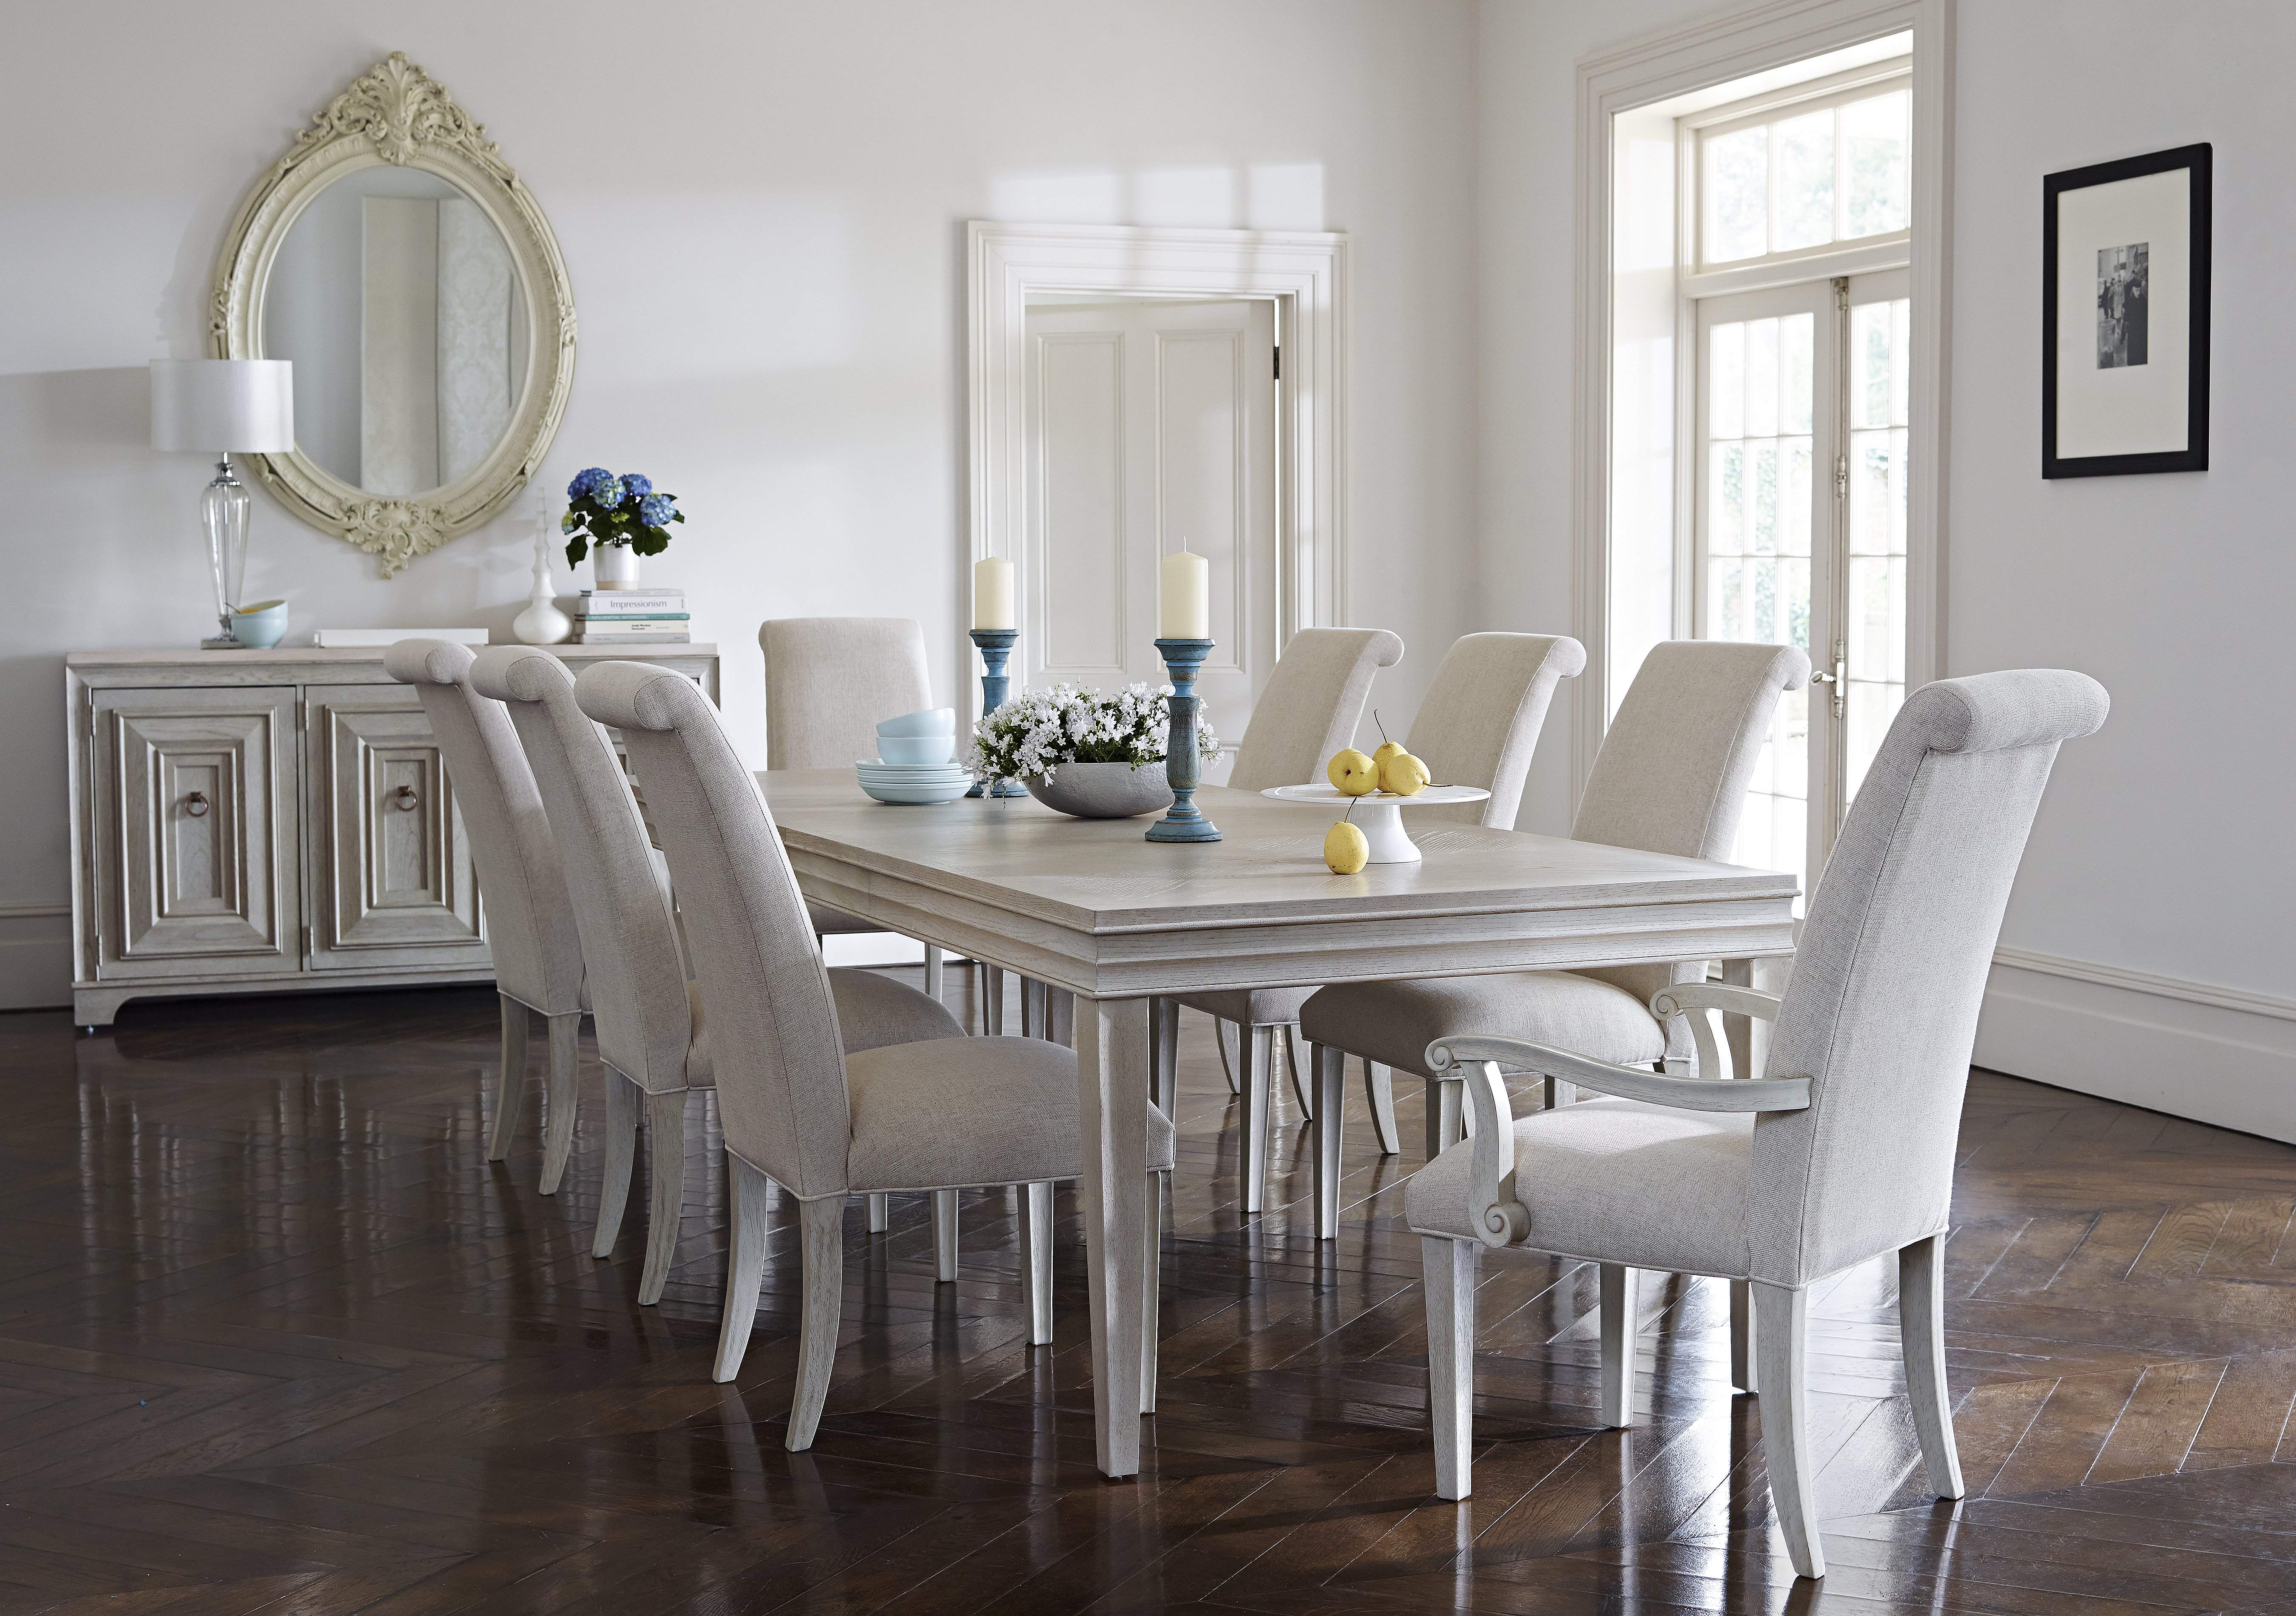 Furniture Village Dining Sets vermont extending dining table - willis and gambier - furniture